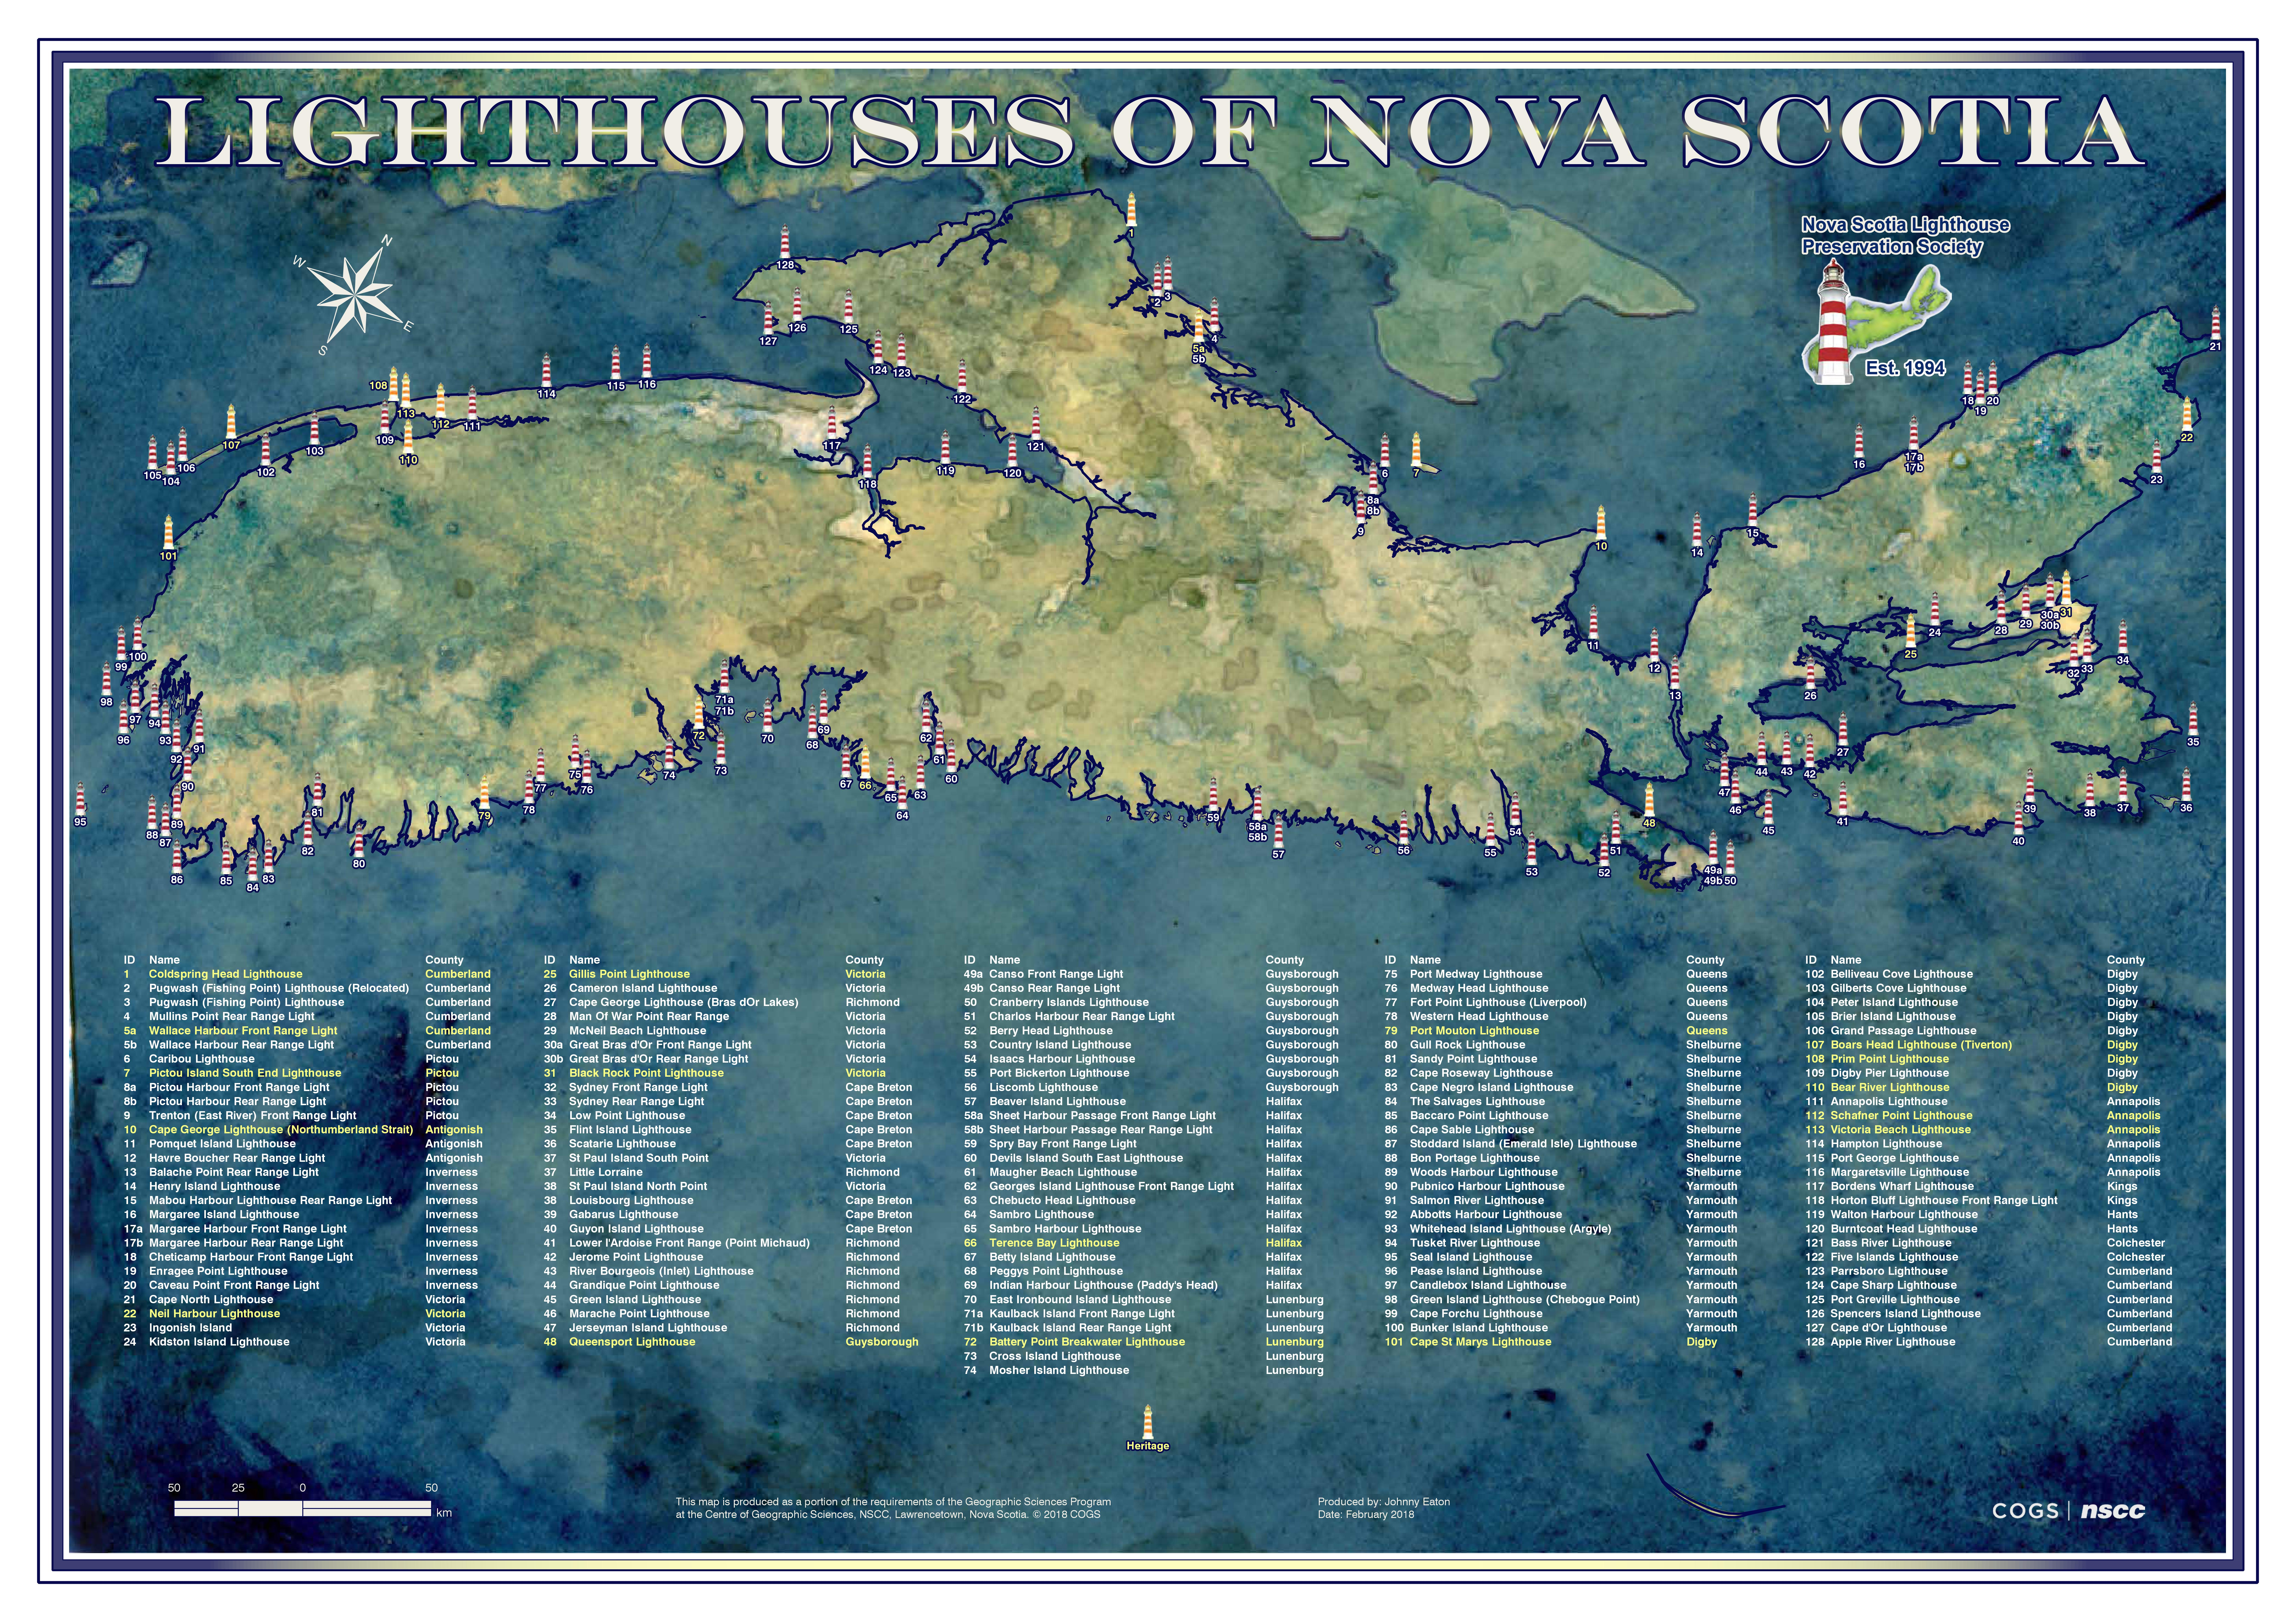 Overview Map Nova Scotia on newfoundland and labrador, new brunswick map, alberta map, quebec map, british columbia map, iceland map, northwest territories, cabot trail map, british columbia, canada map, prince edward island, north america map, cape breton island map, new brunswick, quebec city, ontario map, australia map, saskatchewan map, québec, pei map, peggy's cove map, world map, nevada map, maine map, nfld map, bay of fundy map, scotland map,